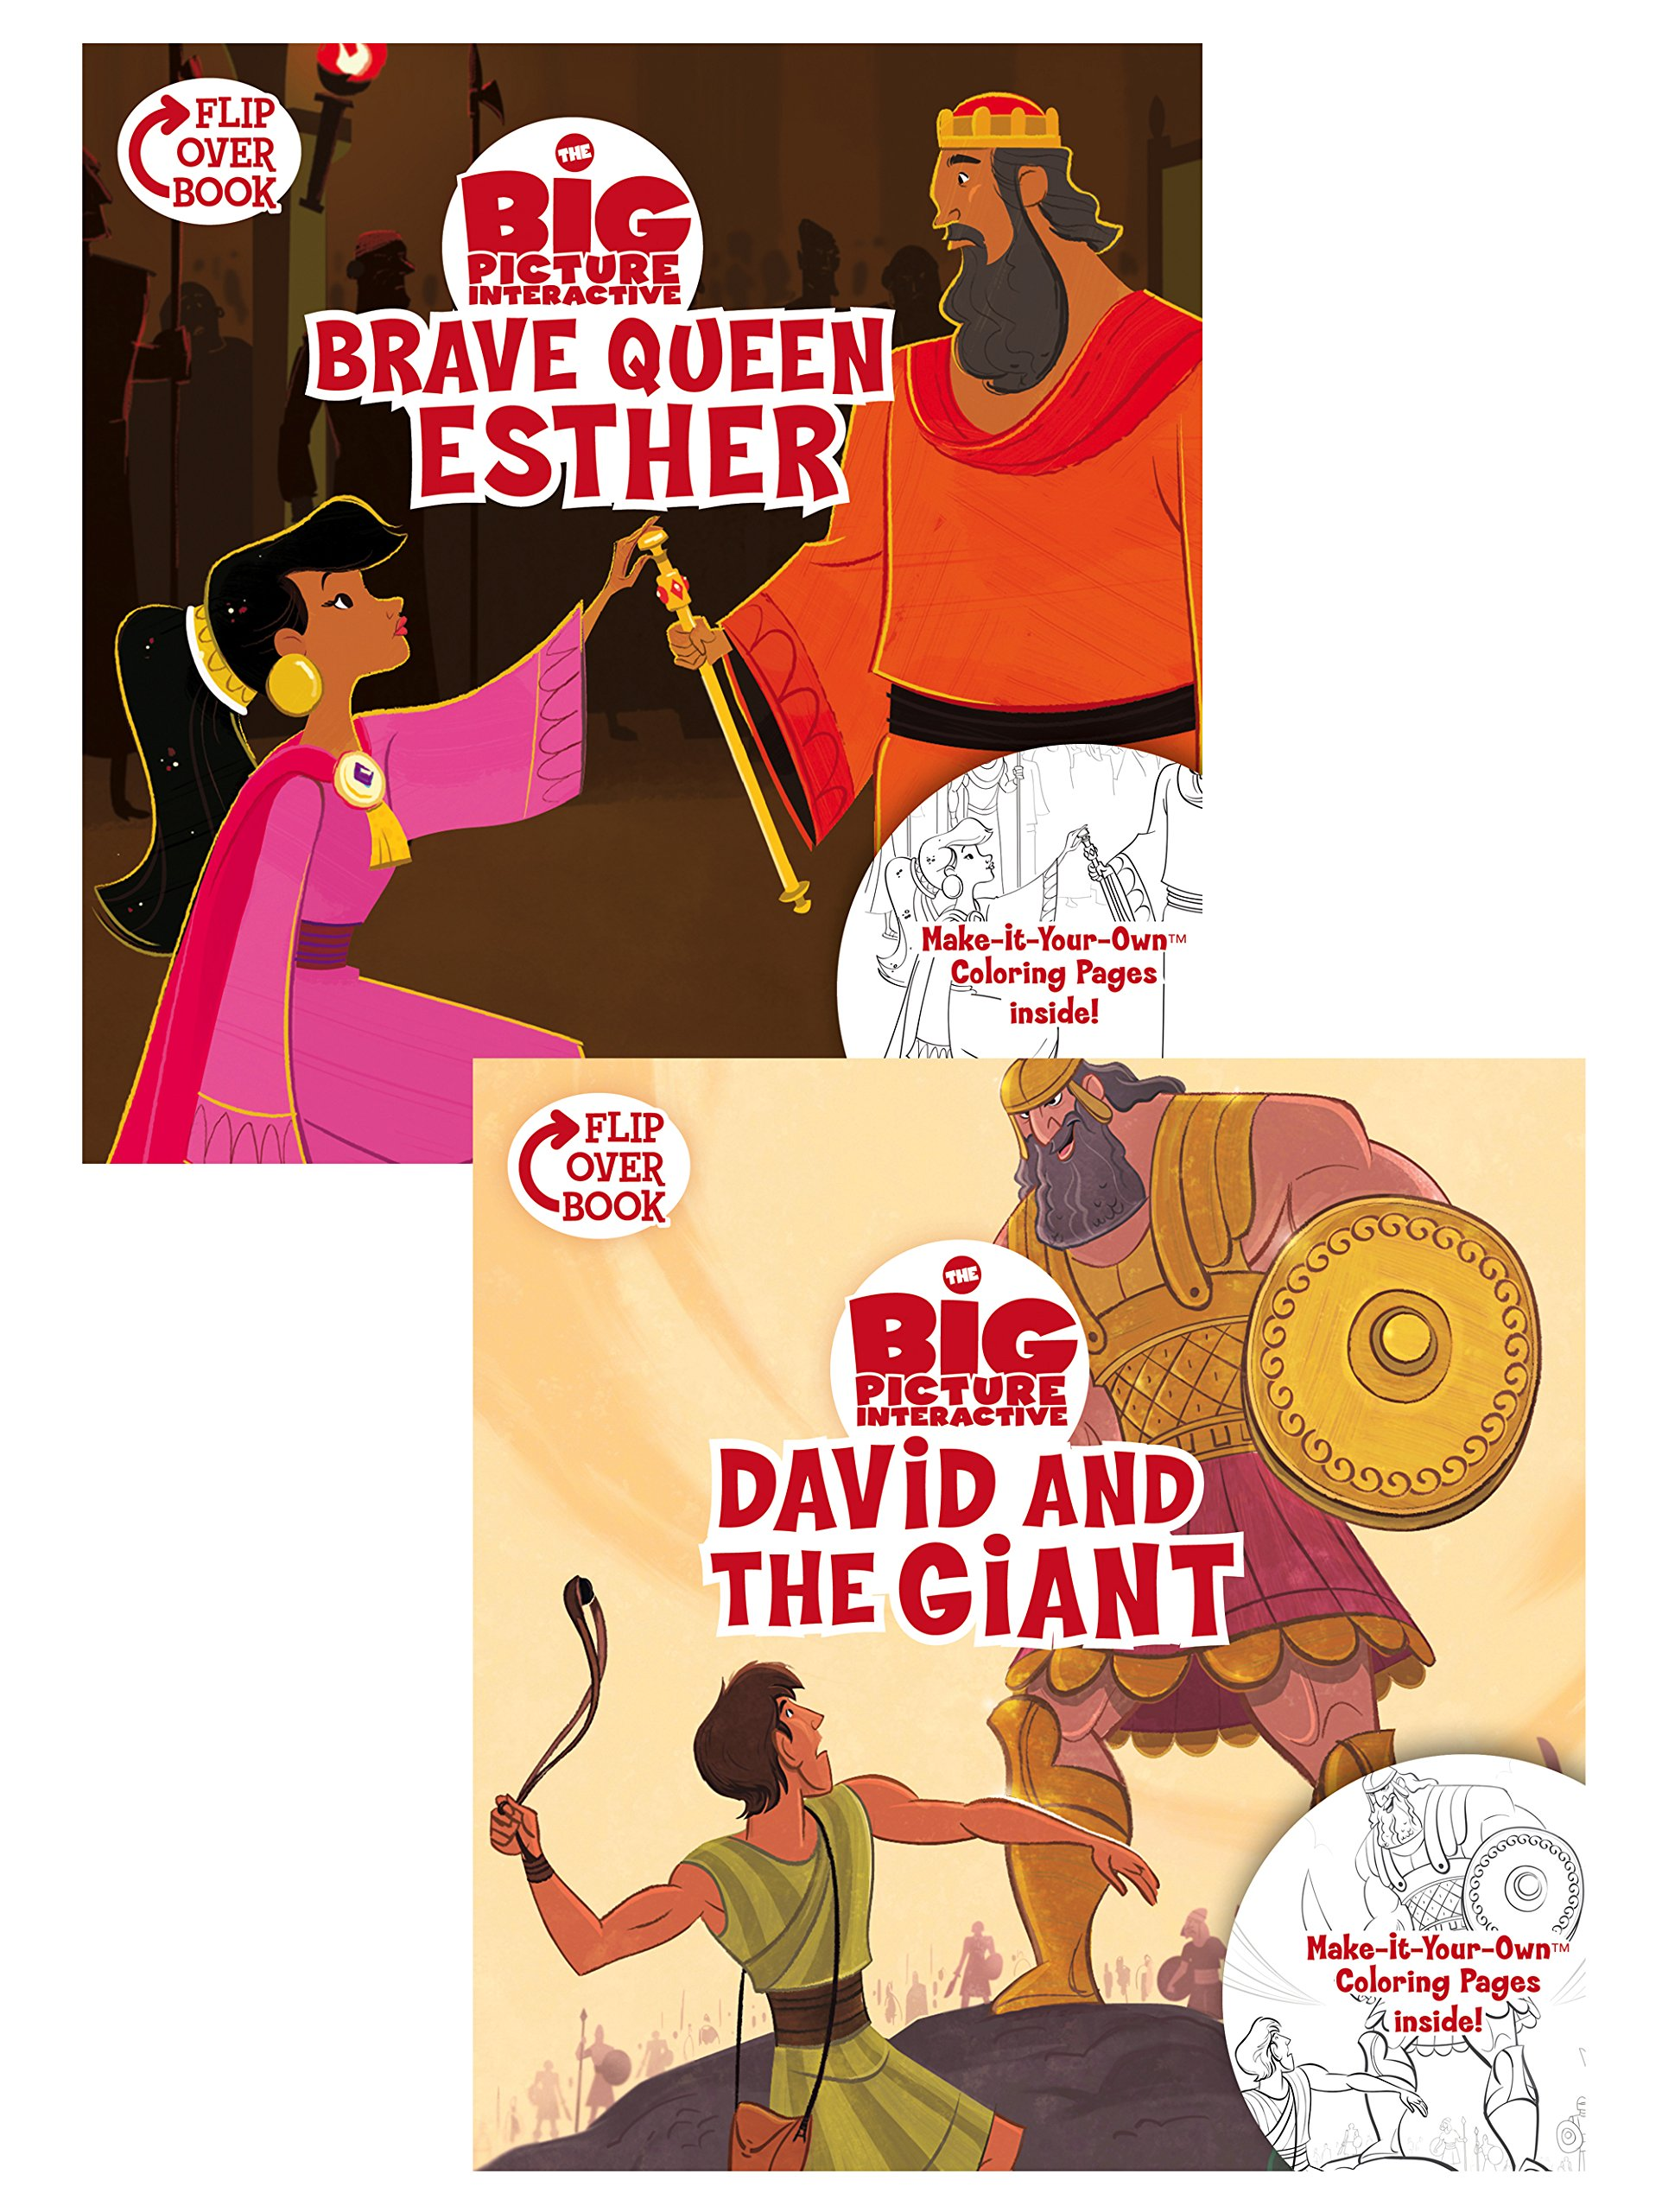 Brave Queen Esther/David and the Giant Flip-Over Book (The Big Picture Interactive / The Gospel Project) pdf epub